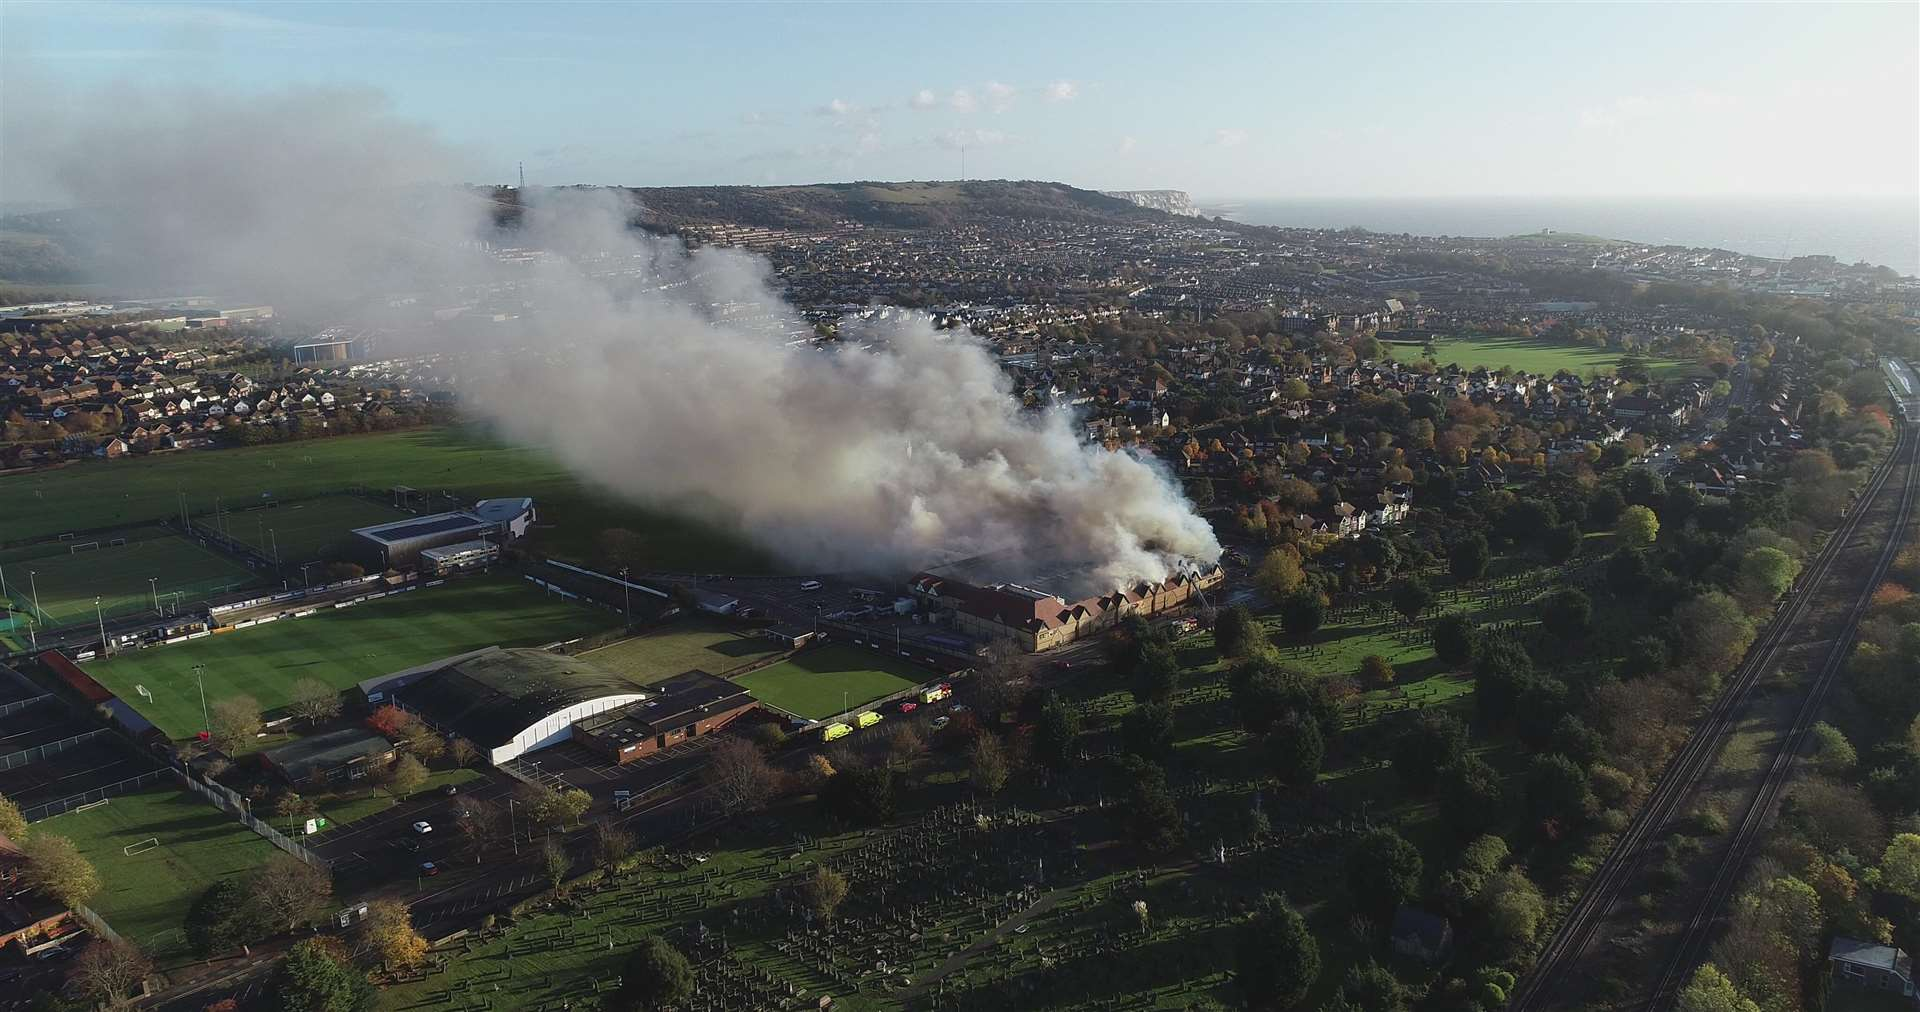 Drone images show the extent of the fire. Picture: Ollie King